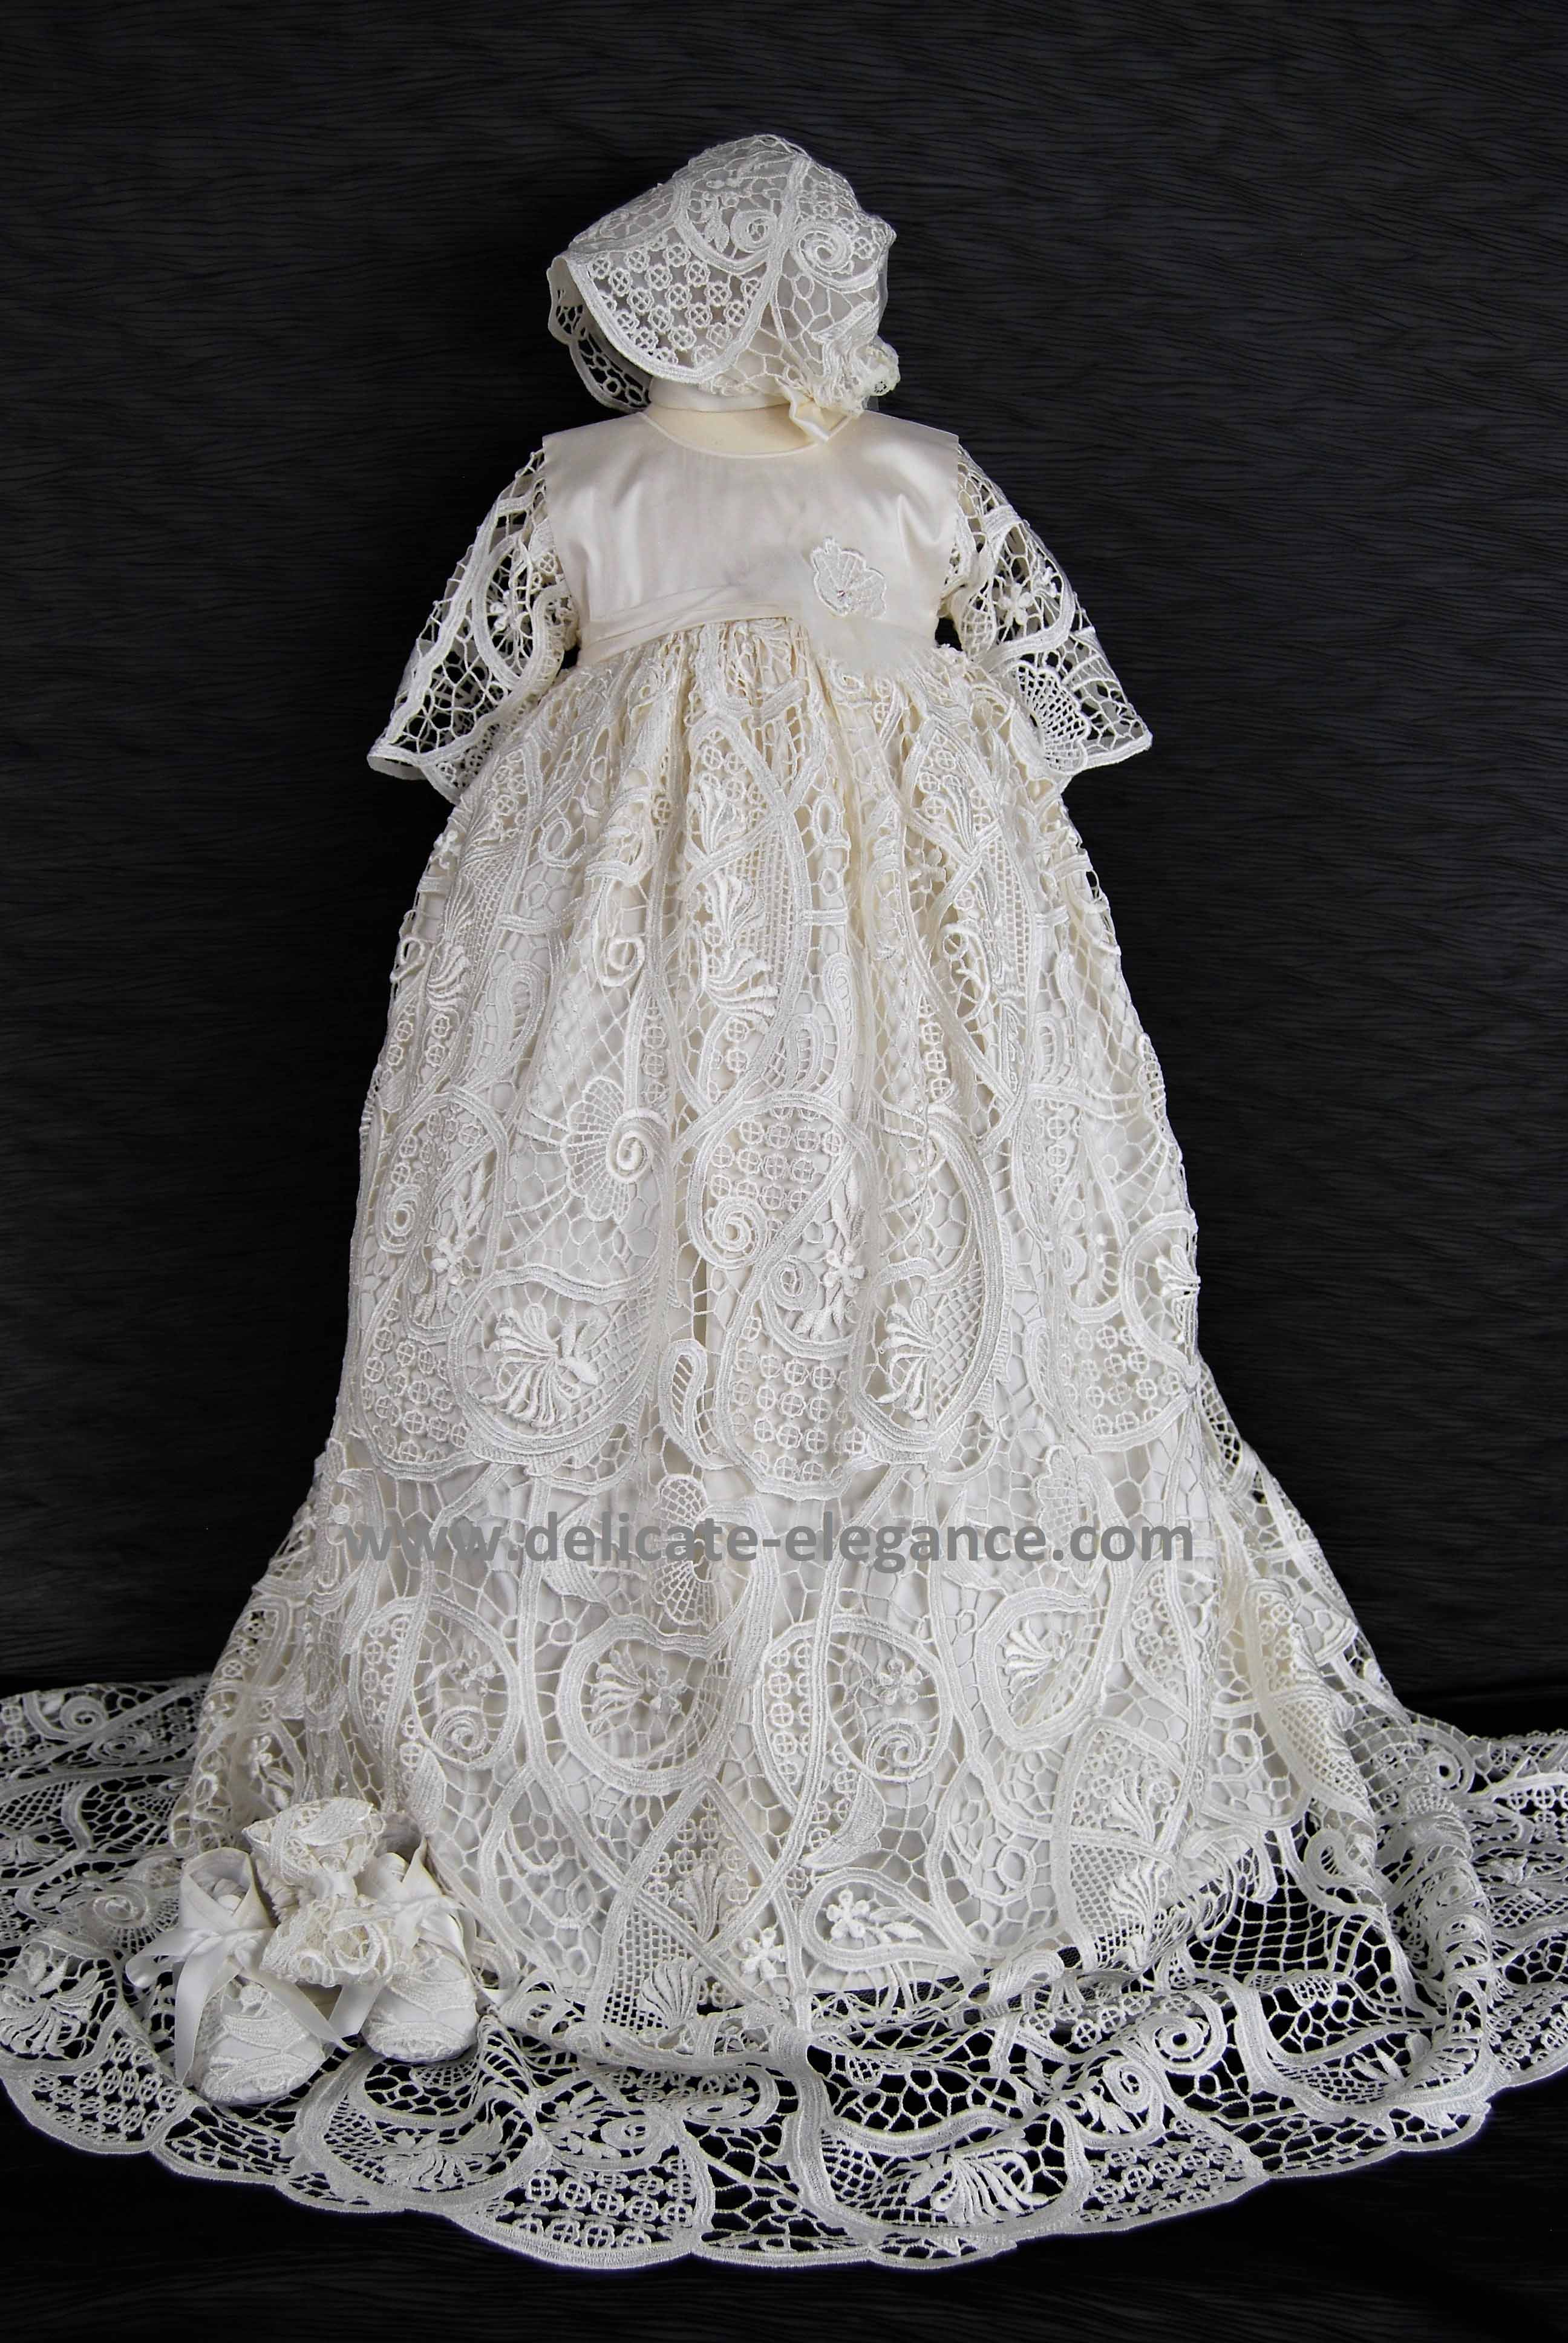 4300 Ivory Lace Girls Silk Christening Gown Delicate